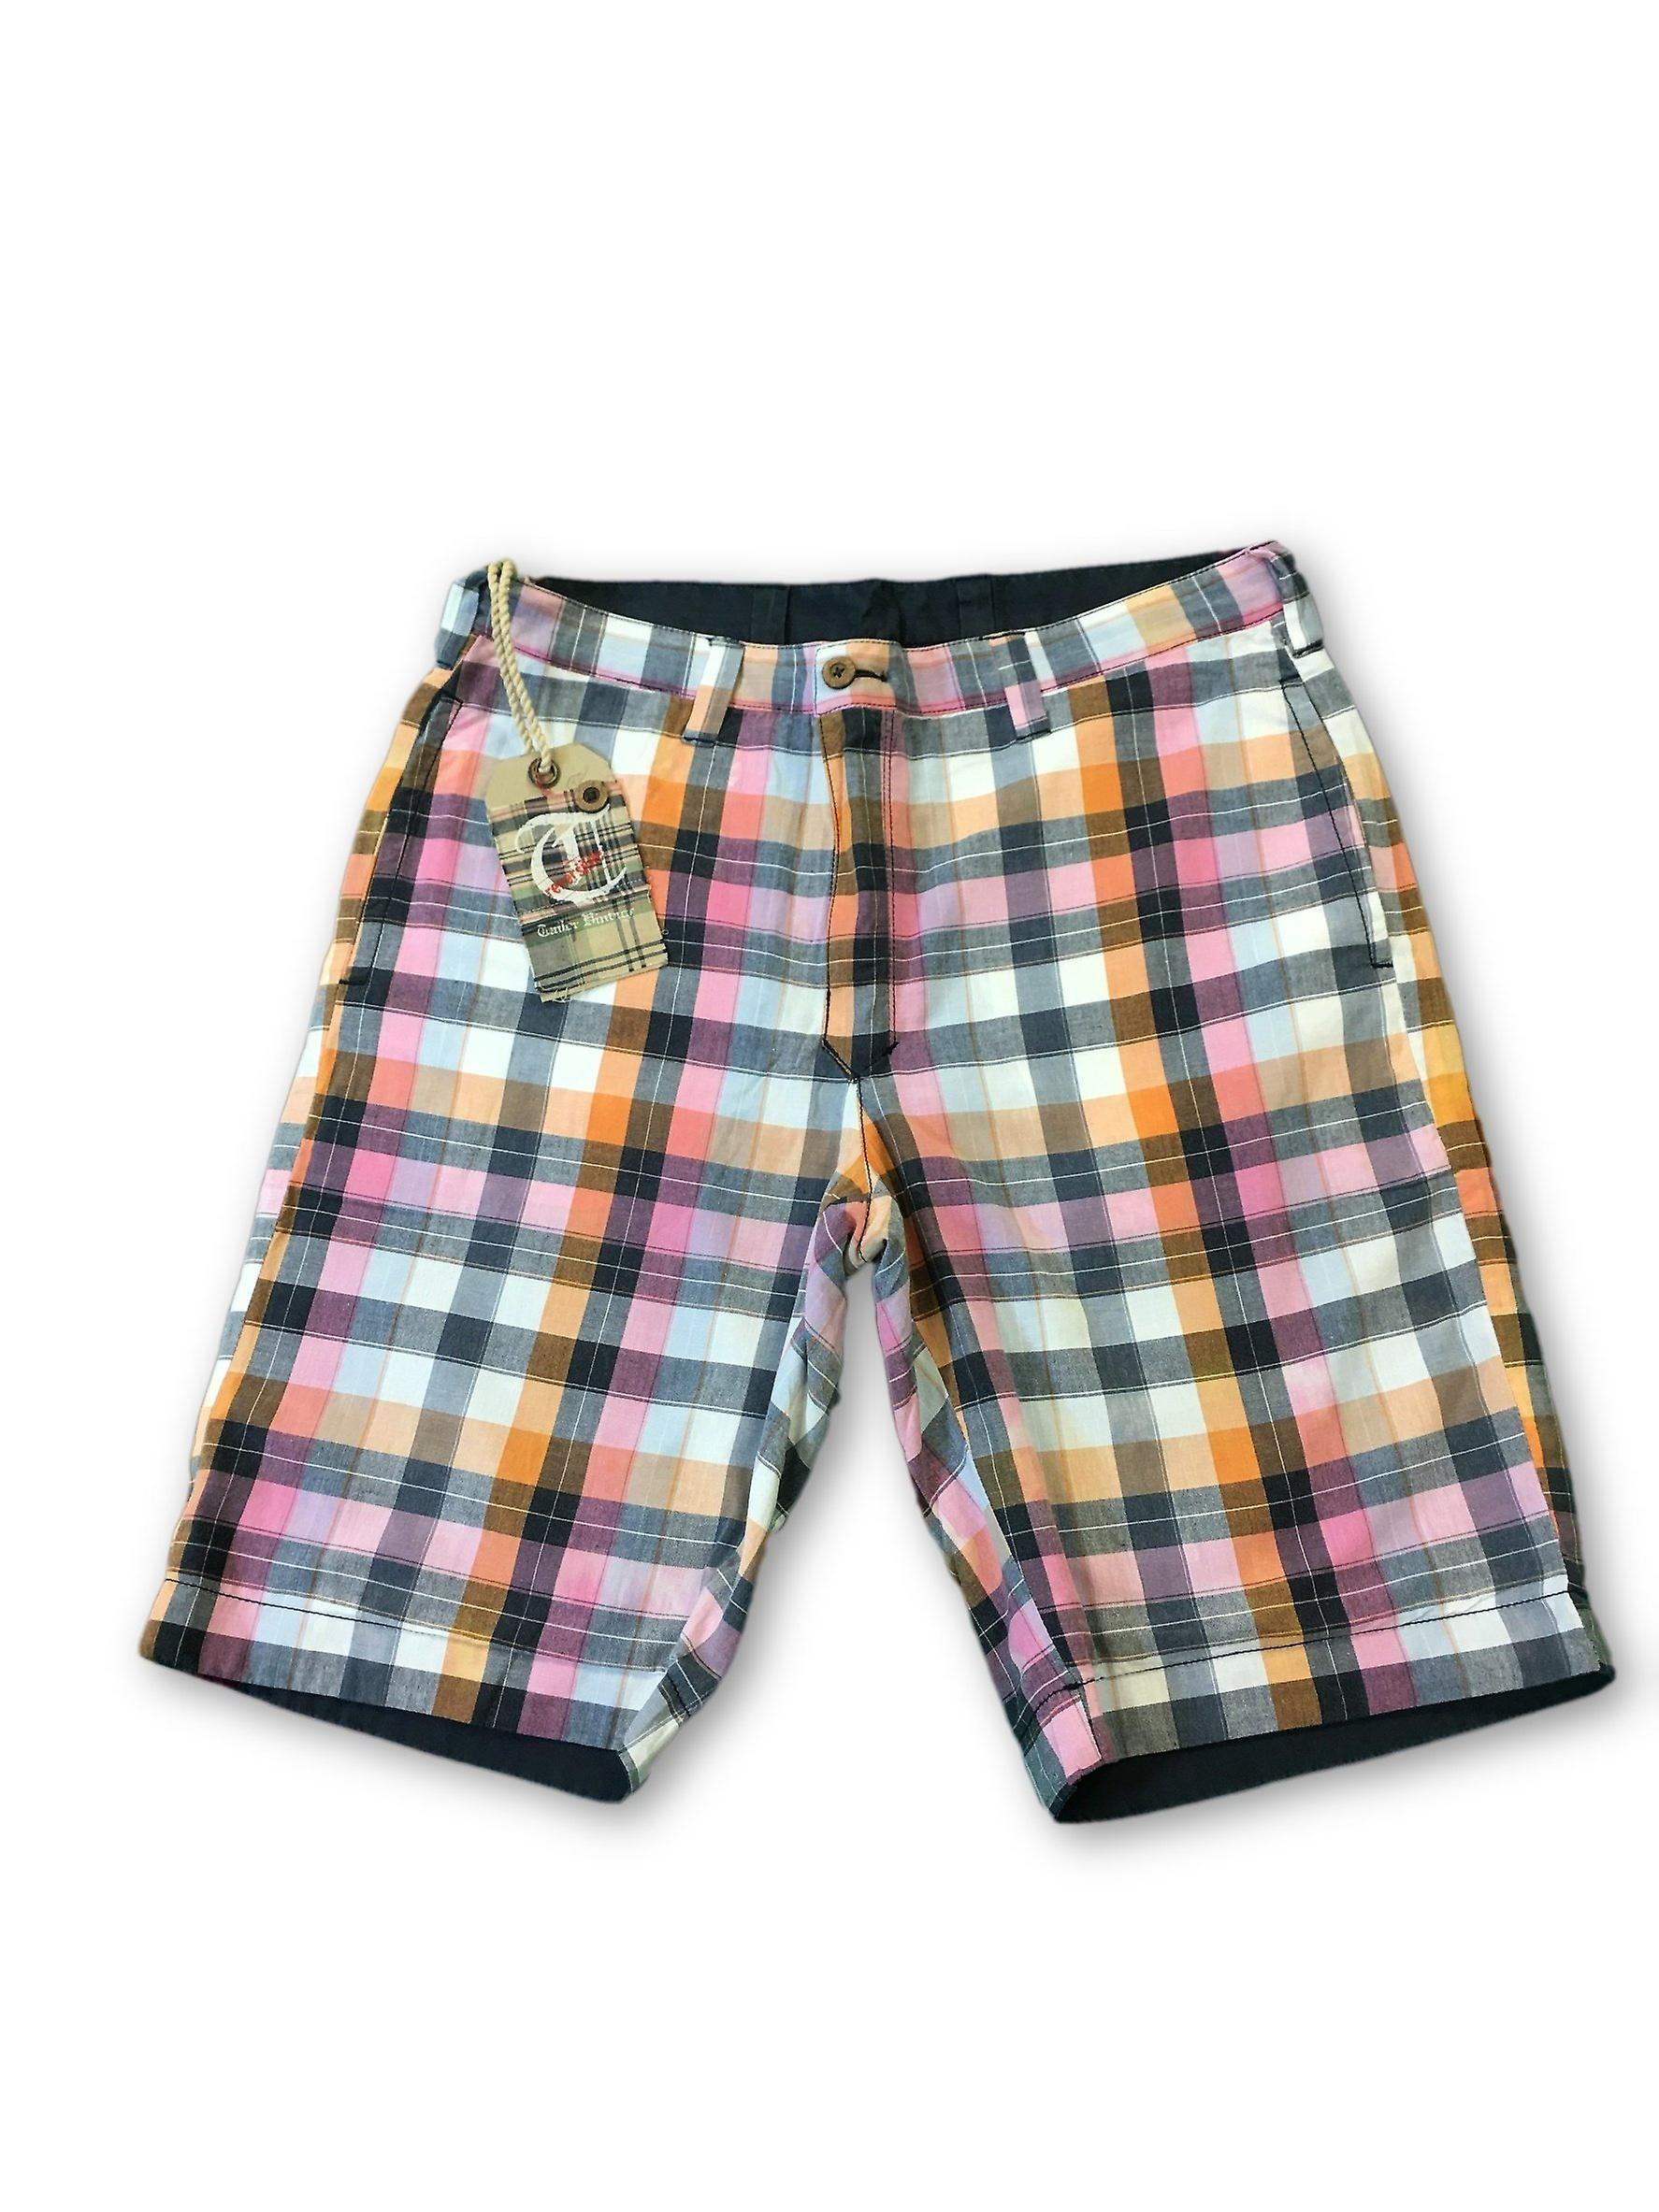 Tailor Vintage reversible shorts in navy multi check